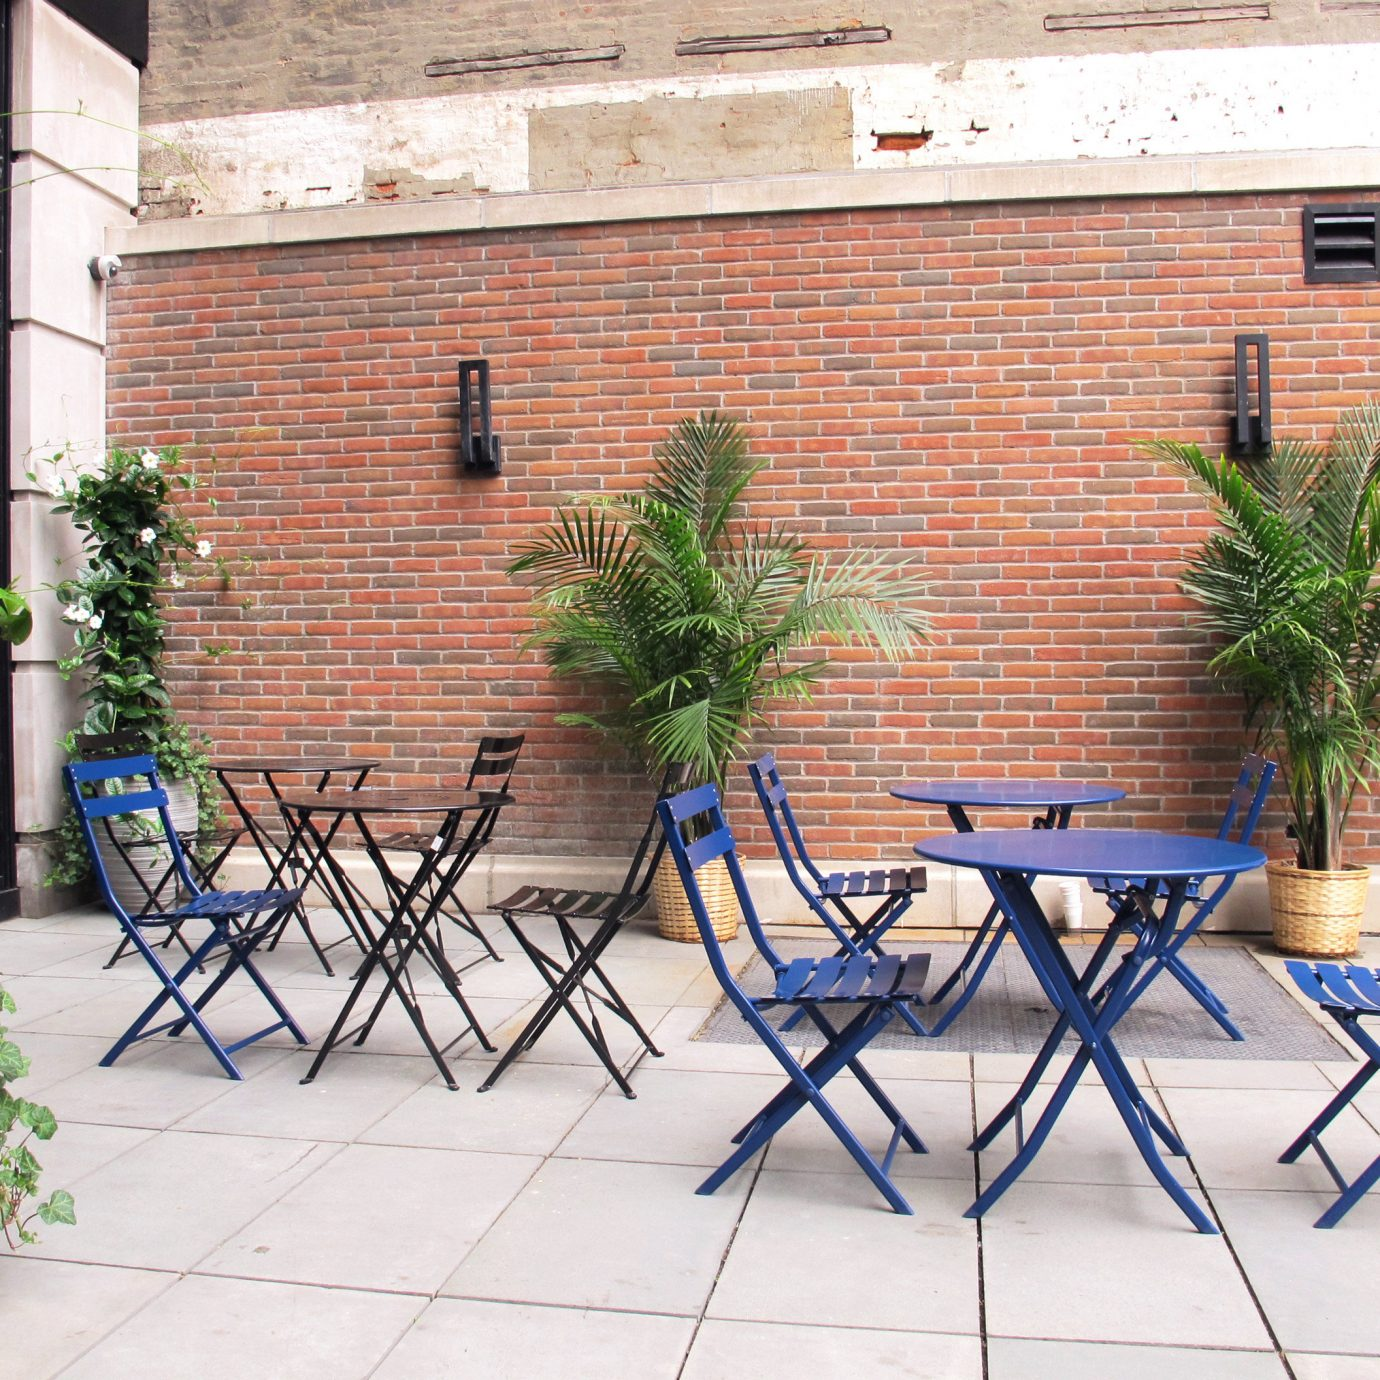 Boutique Courtyard Hip Lounge Modern Patio Terrace building ground property brick home yard backyard cottage outdoor structure Balcony Fence plant